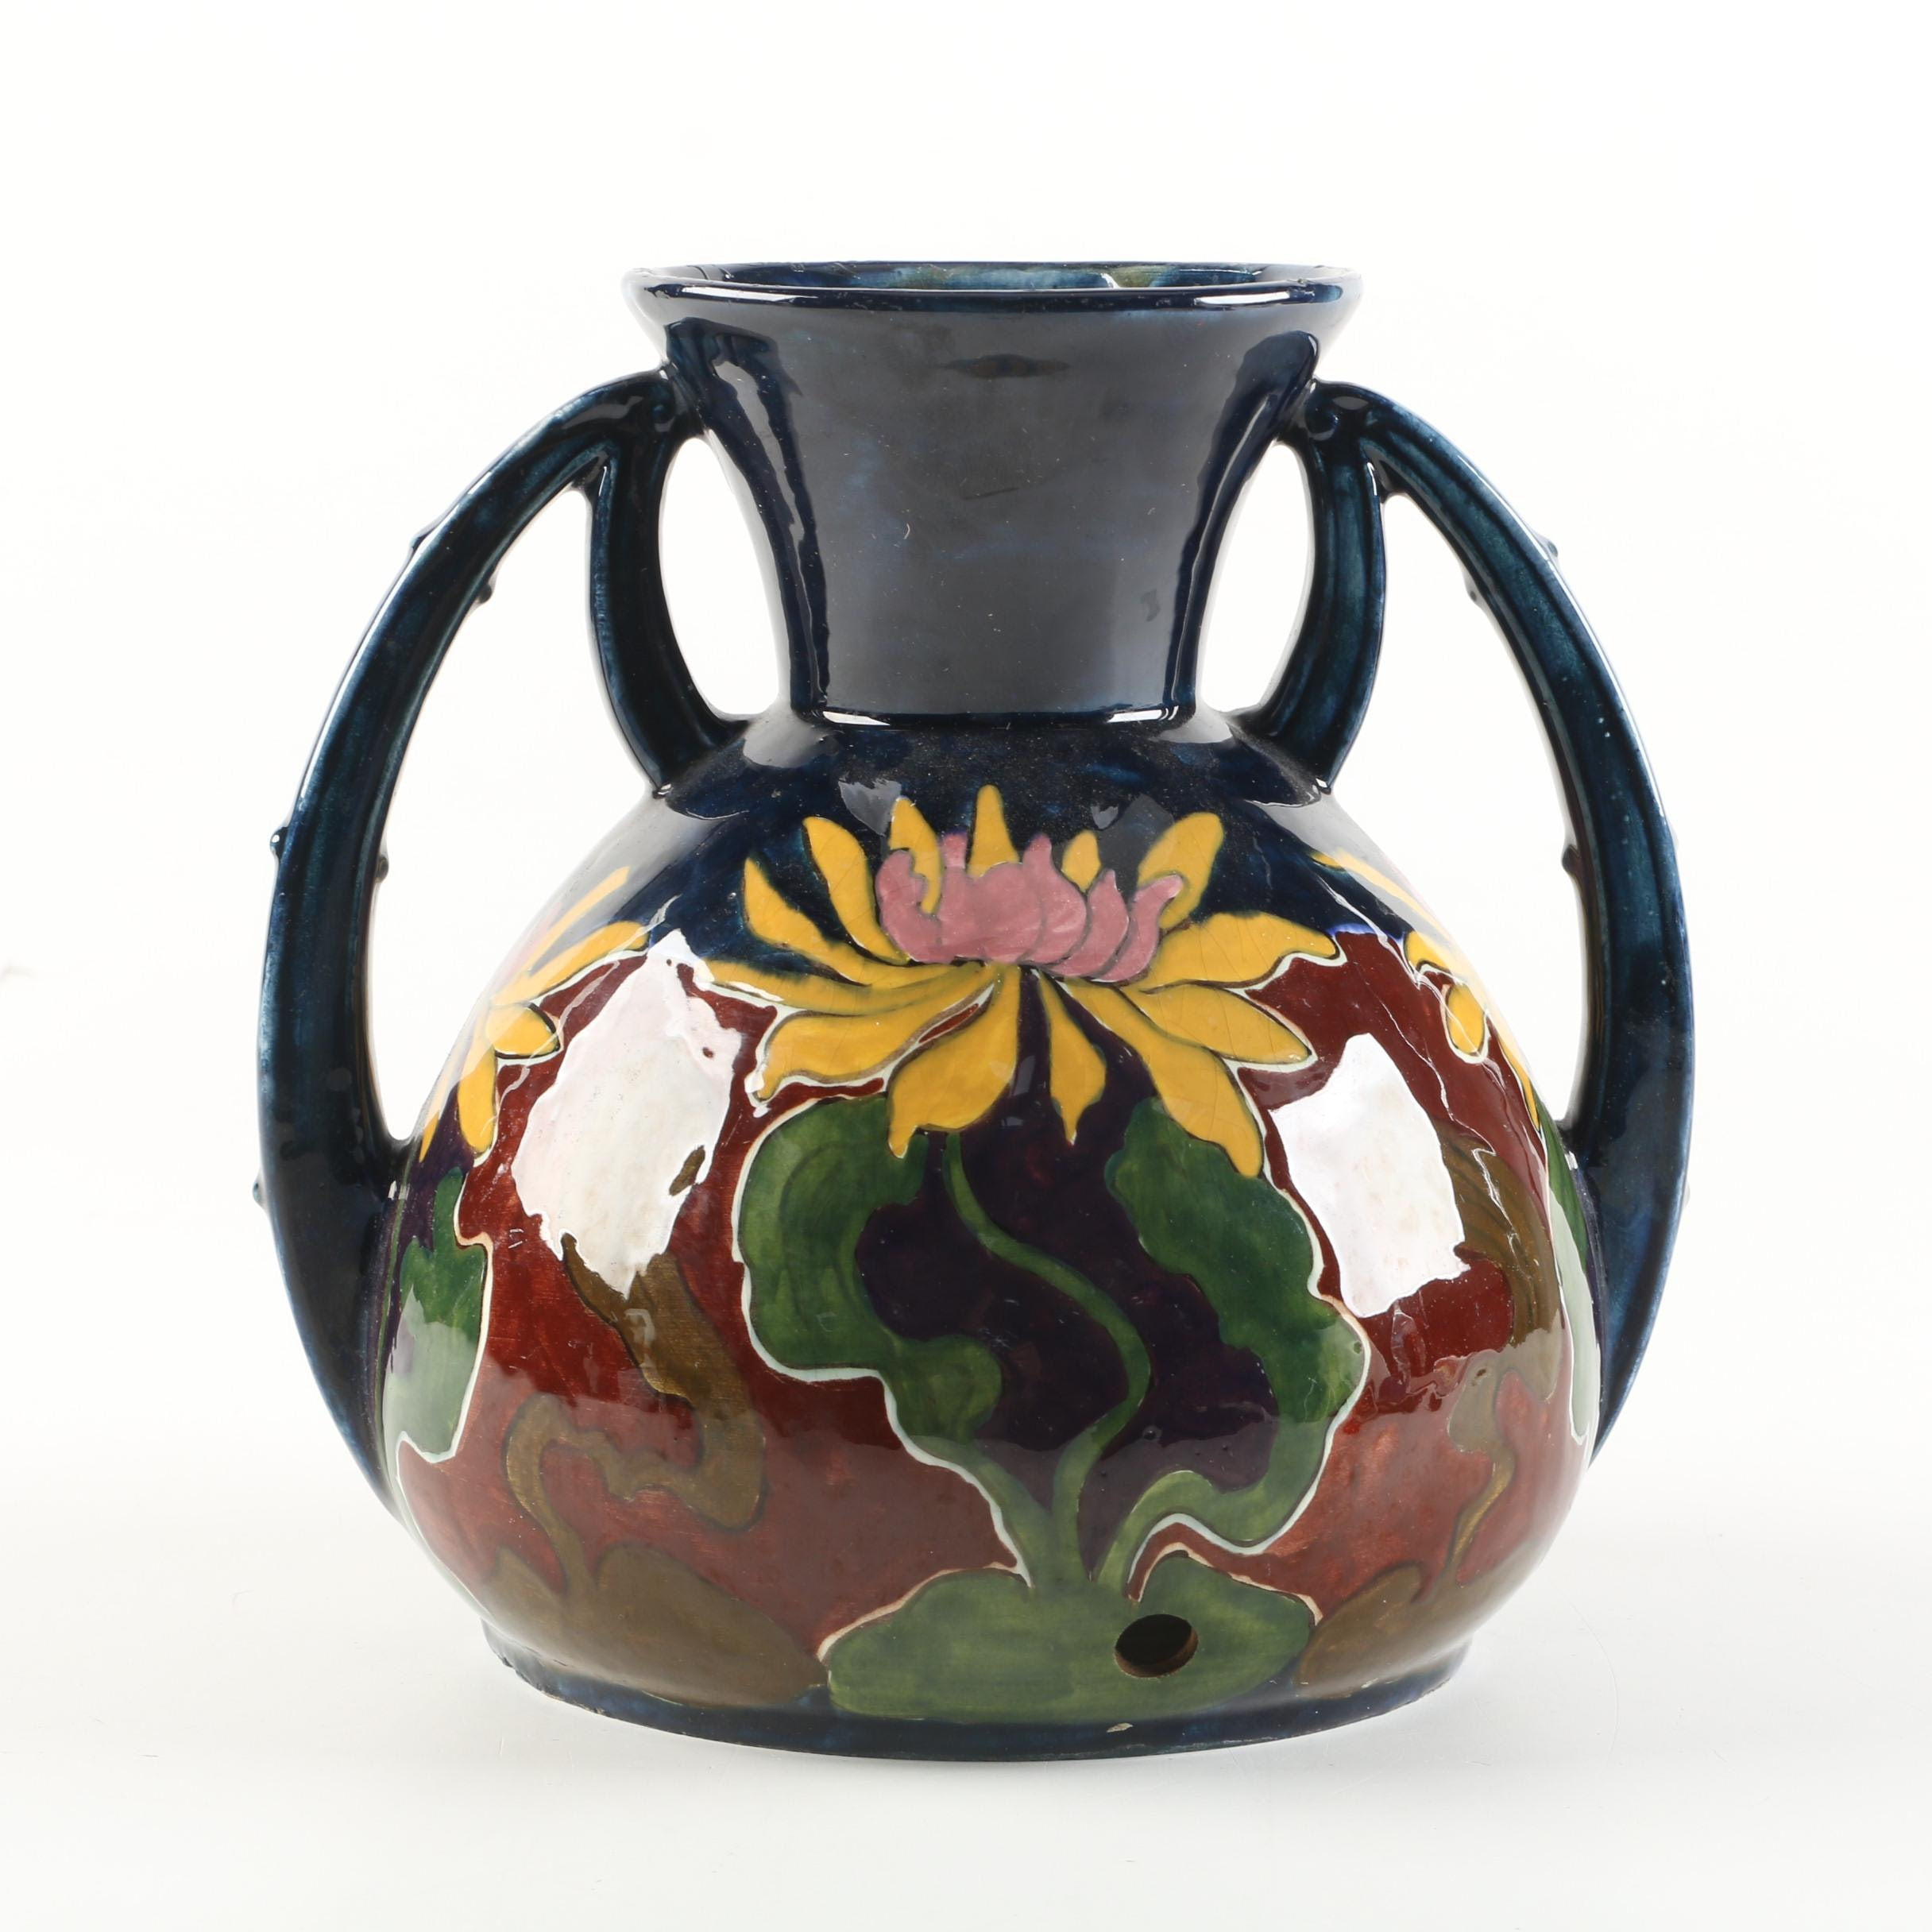 Old Moravian Pottery Austrian Arts and Crafts Vase (c.1899-1918)